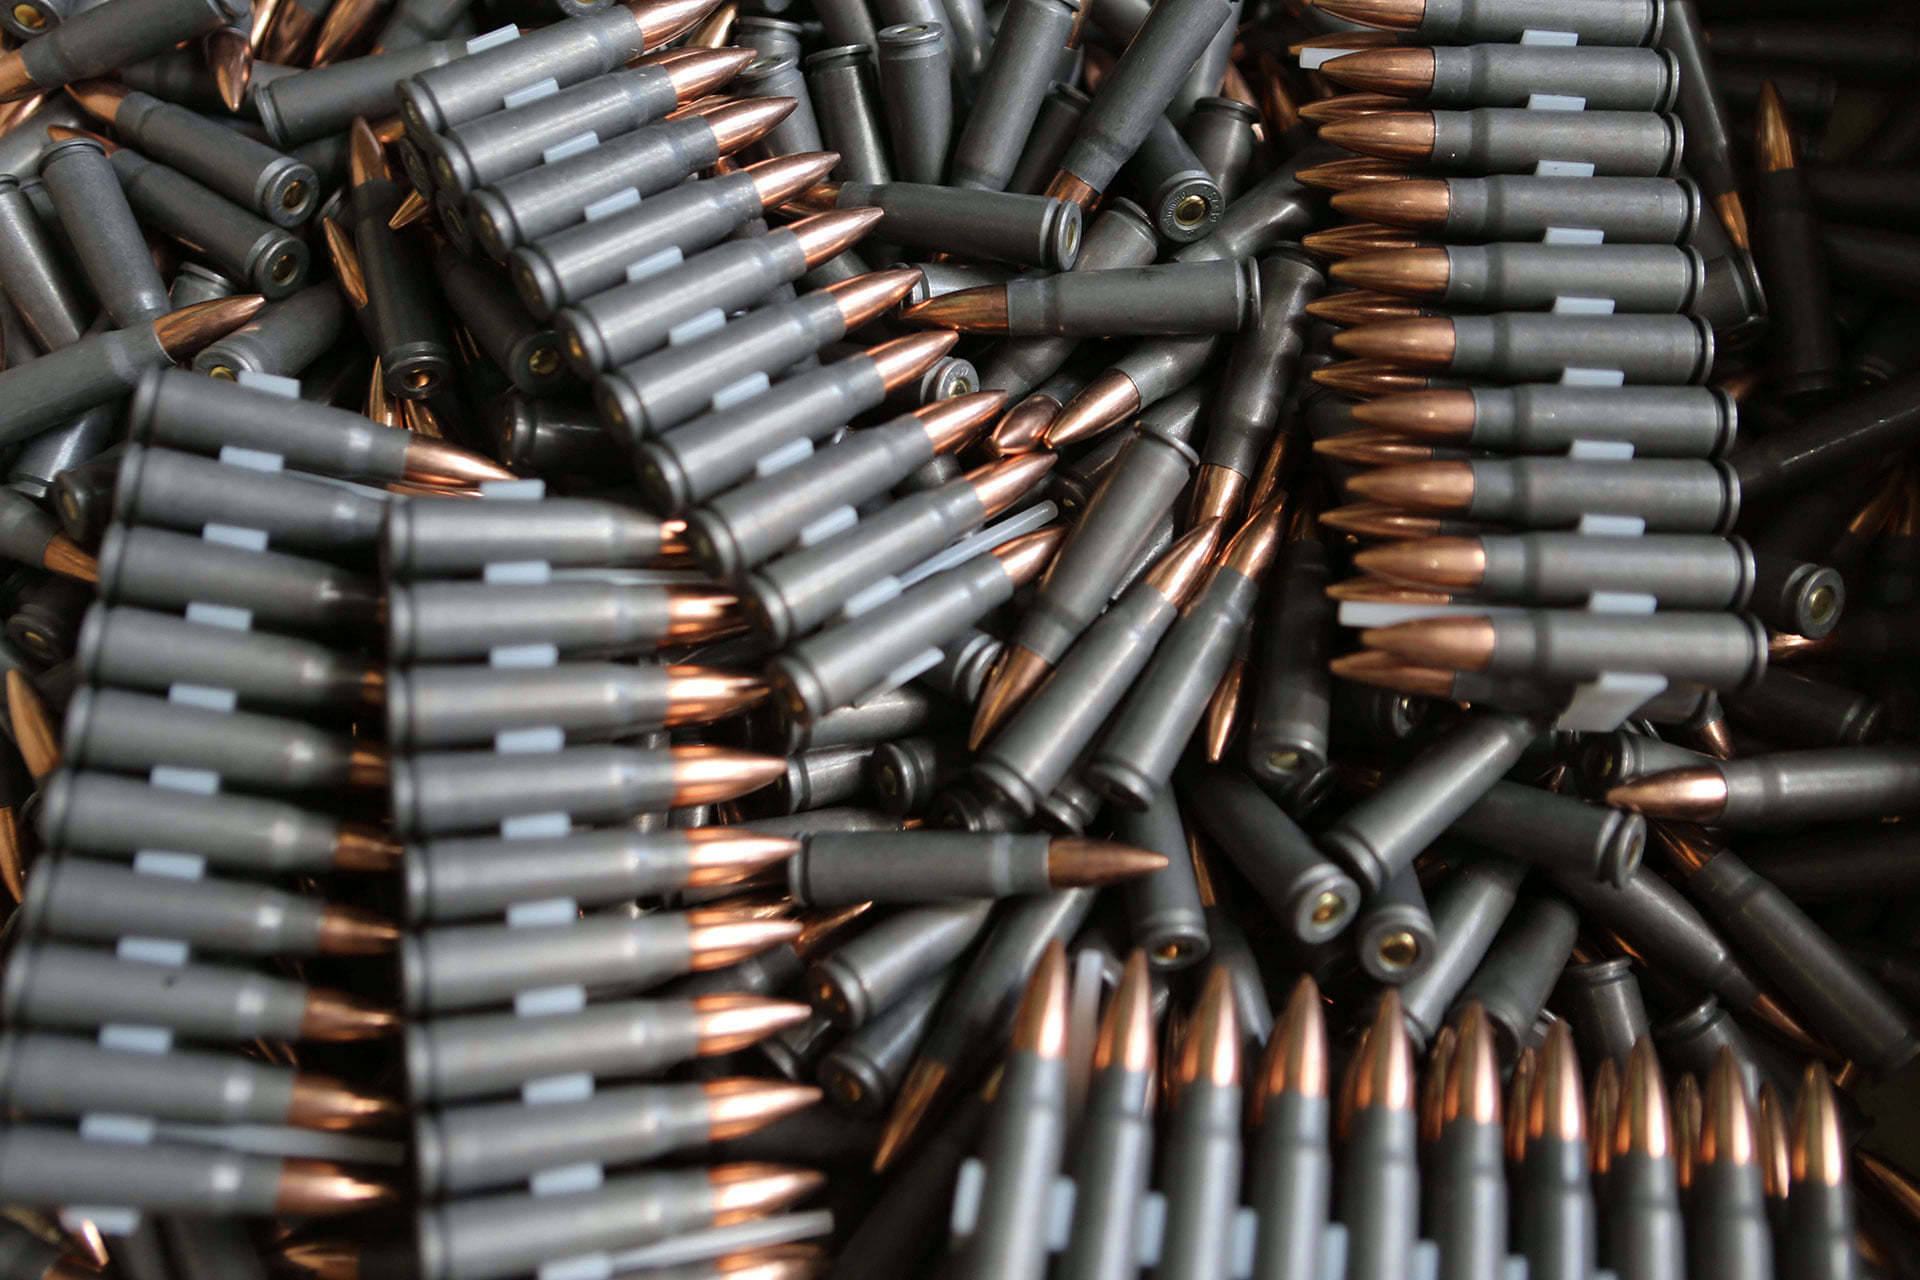 Finished products, caliber cartridges 7.62 mm